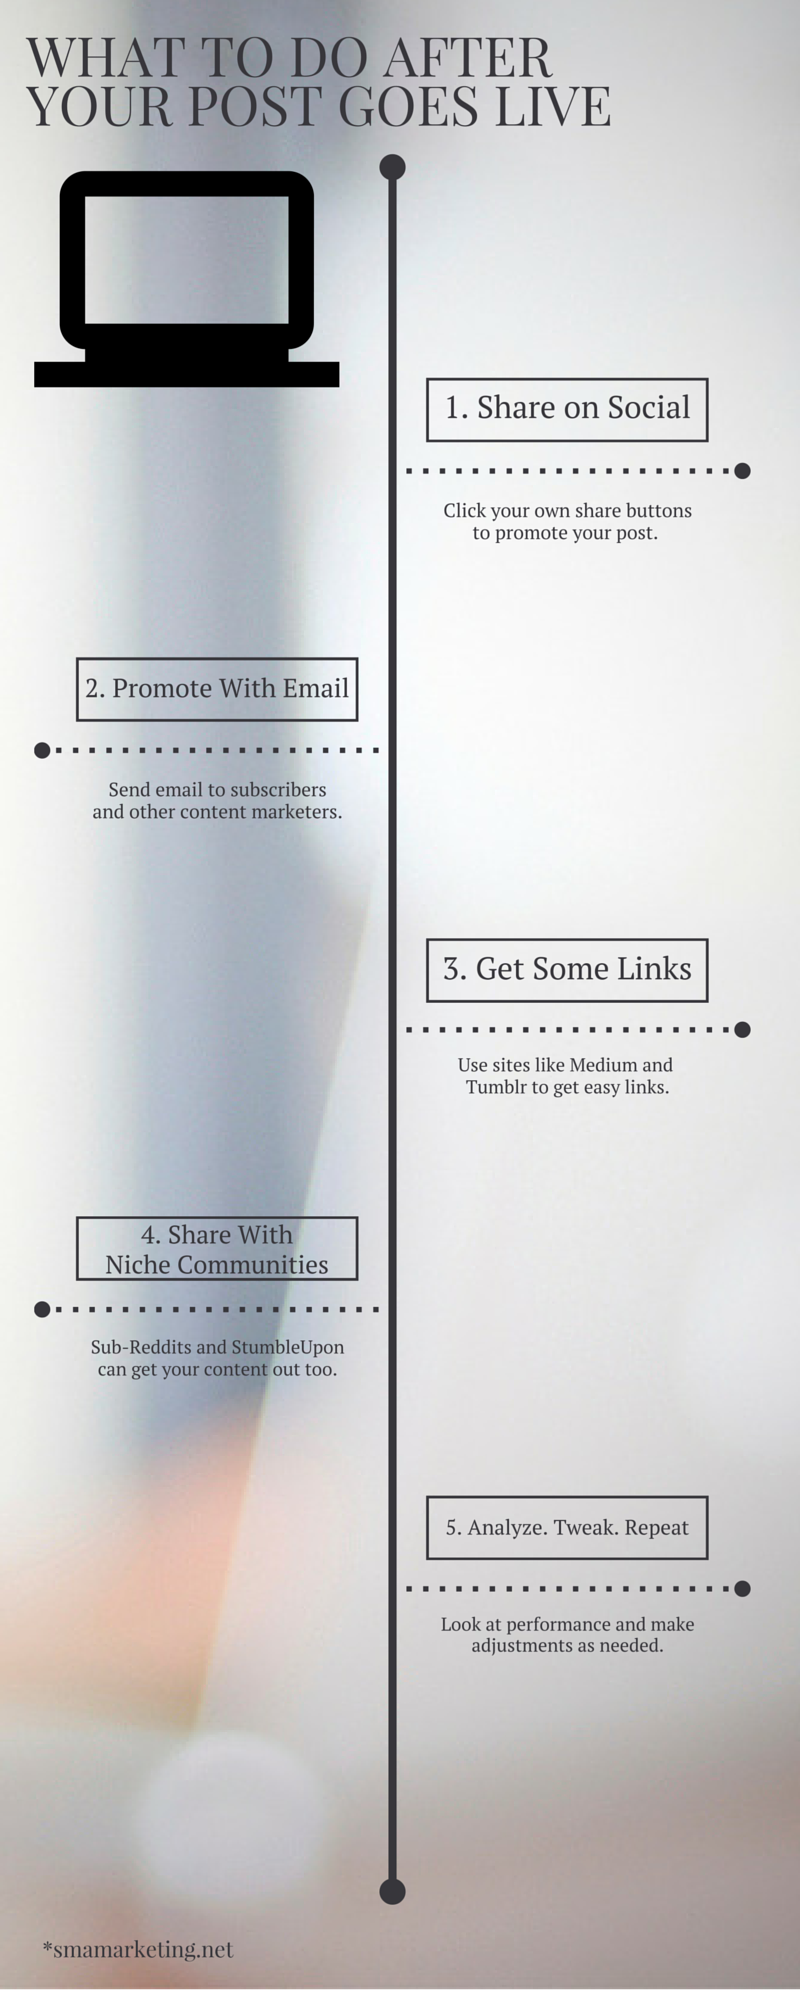 5 Things to do After Your Post Goes Live. If you're looking to get more reach and more subscribers with your blog, you'll need to take a few extra steps. http://blog.smamarketing.net/5-things-to-do-after-your-post-goes-live